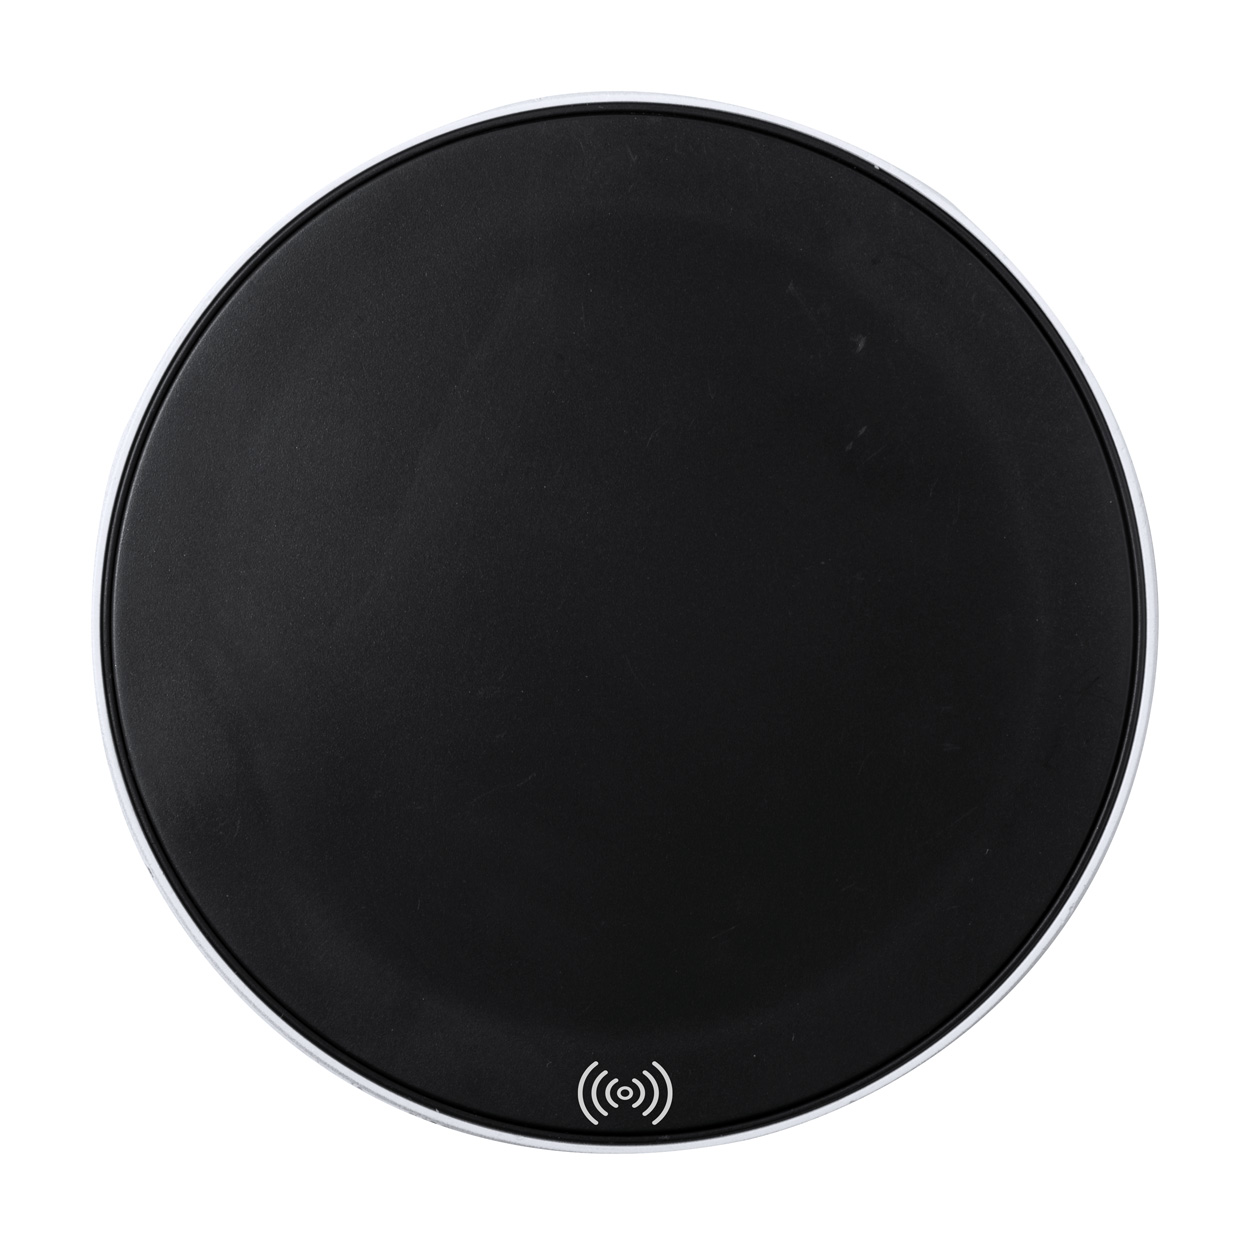 Tuzer wireless charger